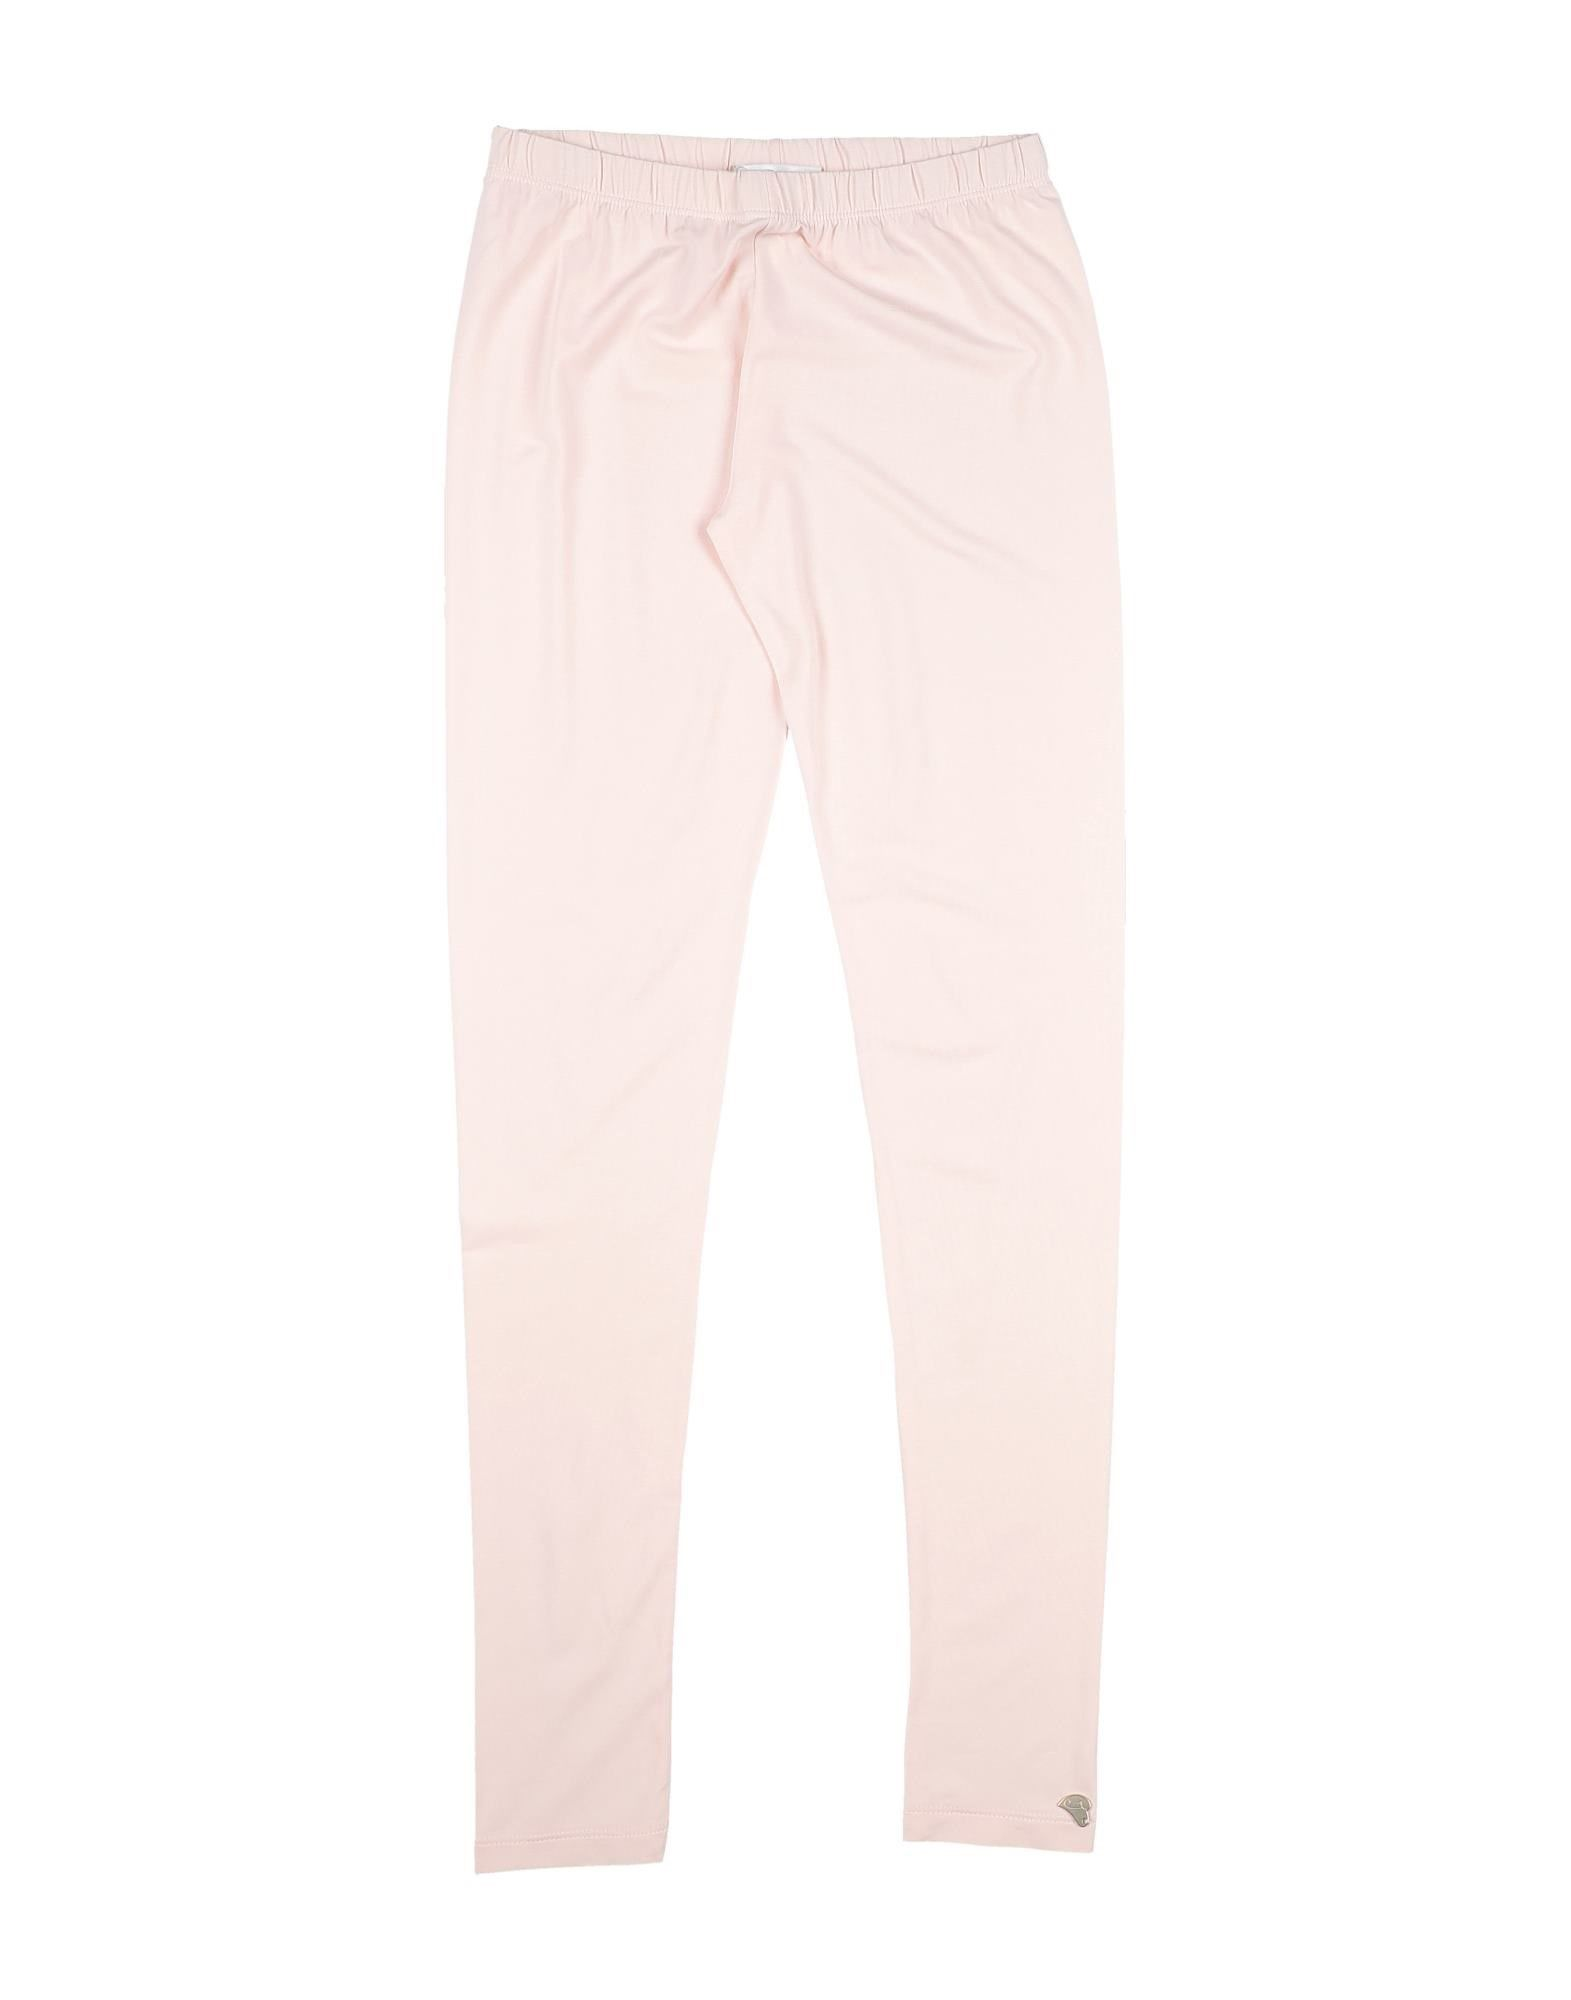 Illudia Kids' Casual Pants In Pink